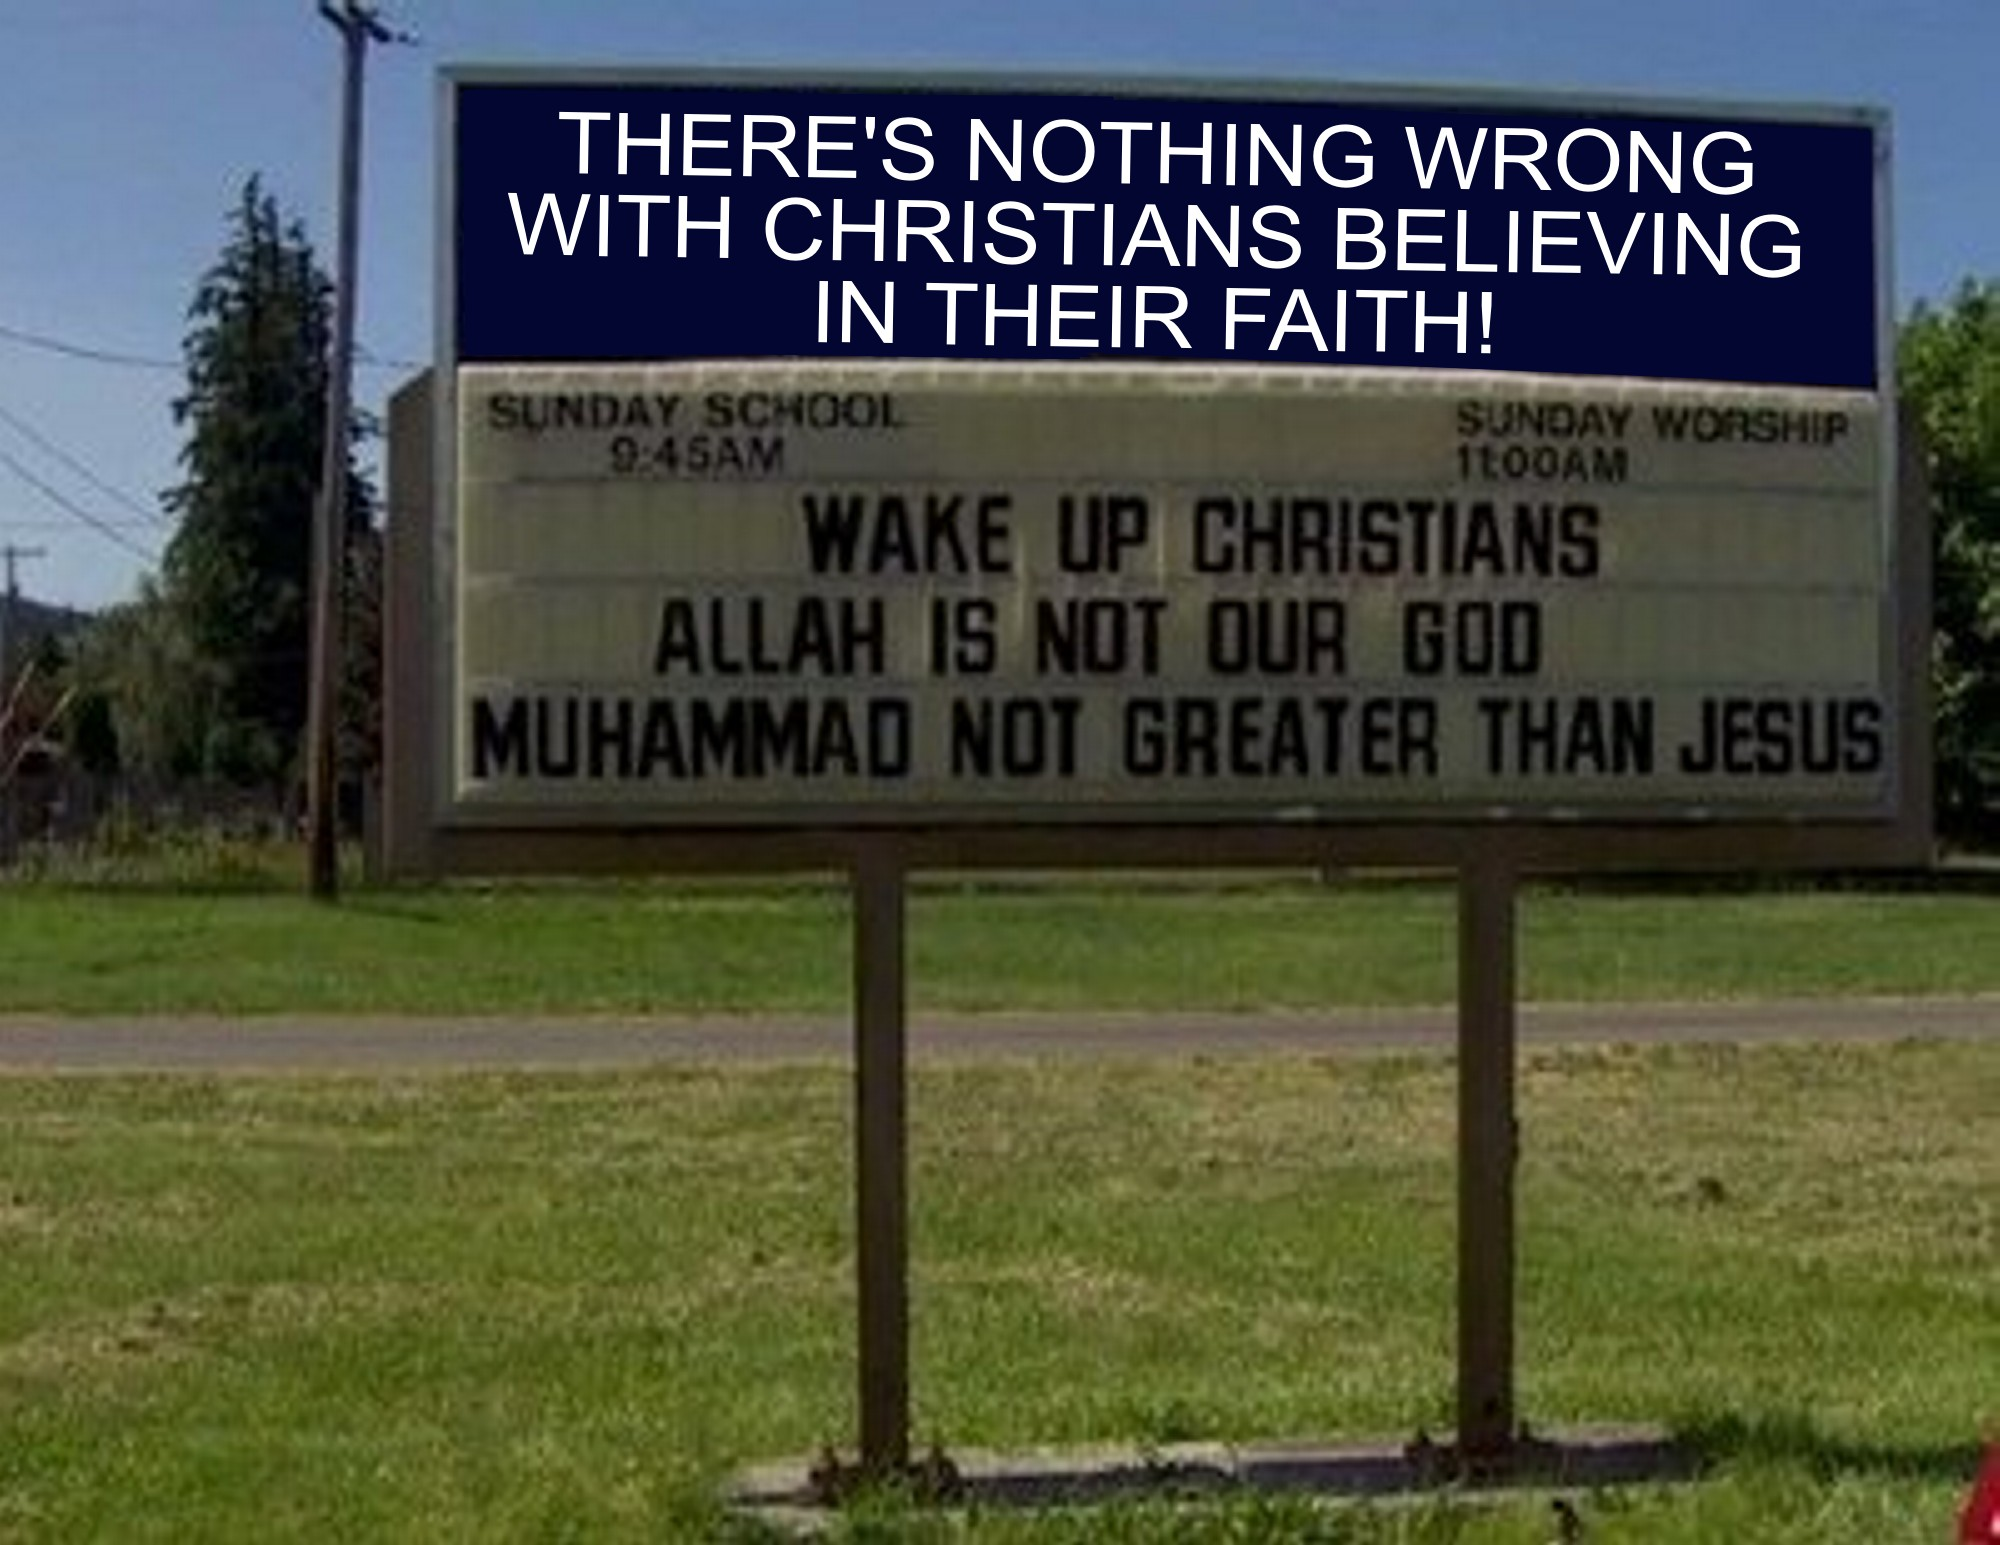 There's nothing wrong with Christians supporting their religion by emphasizing the differences with Islam